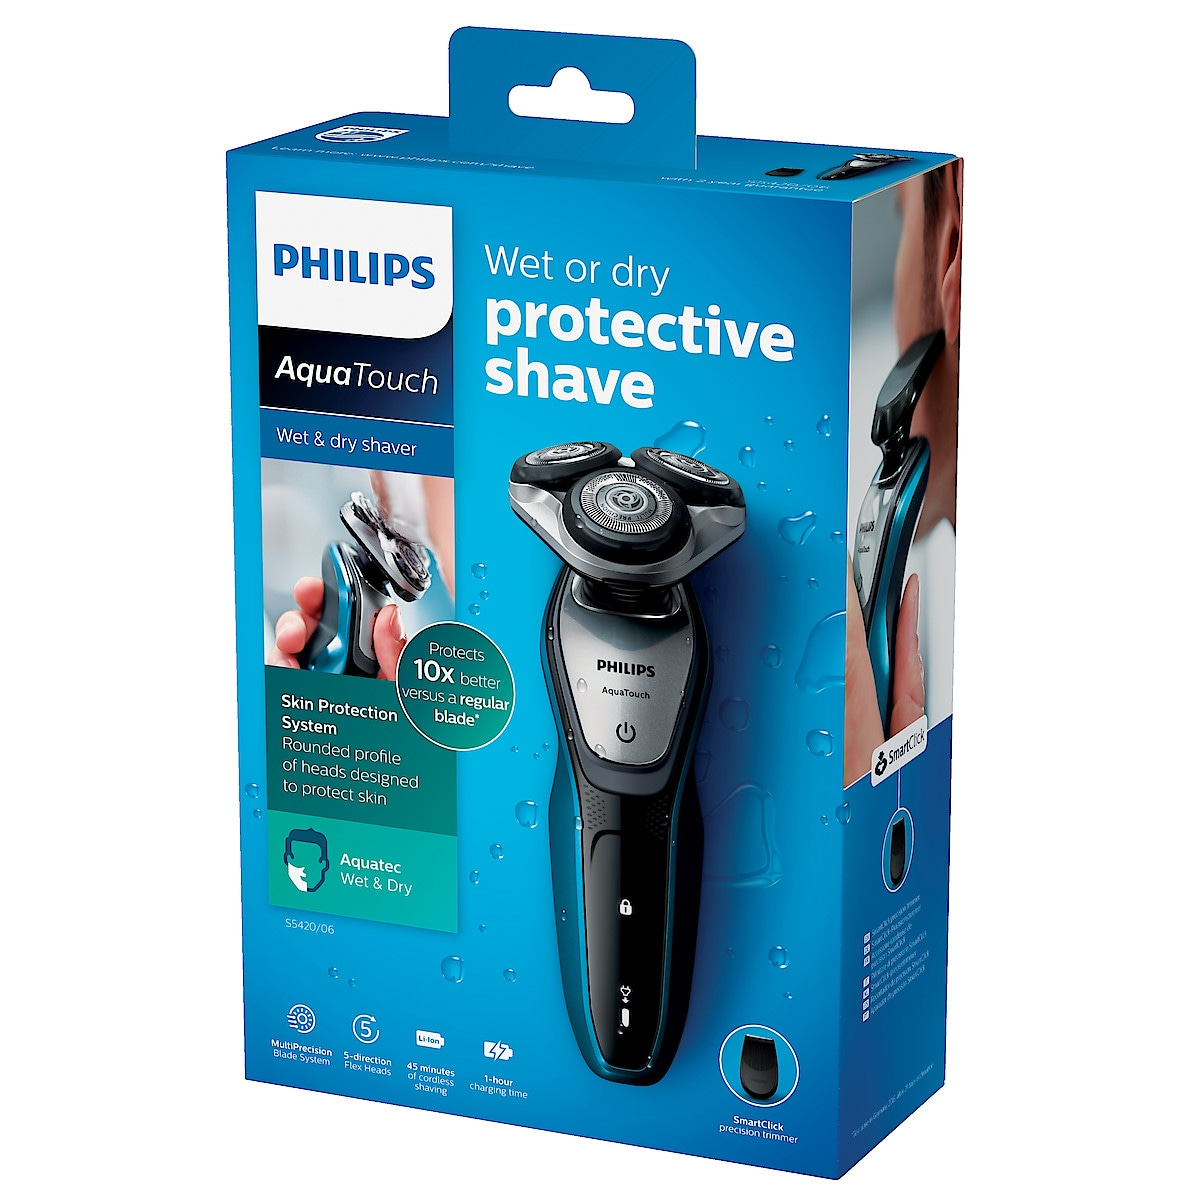 Partakone Philips AquaTouch S5420/06